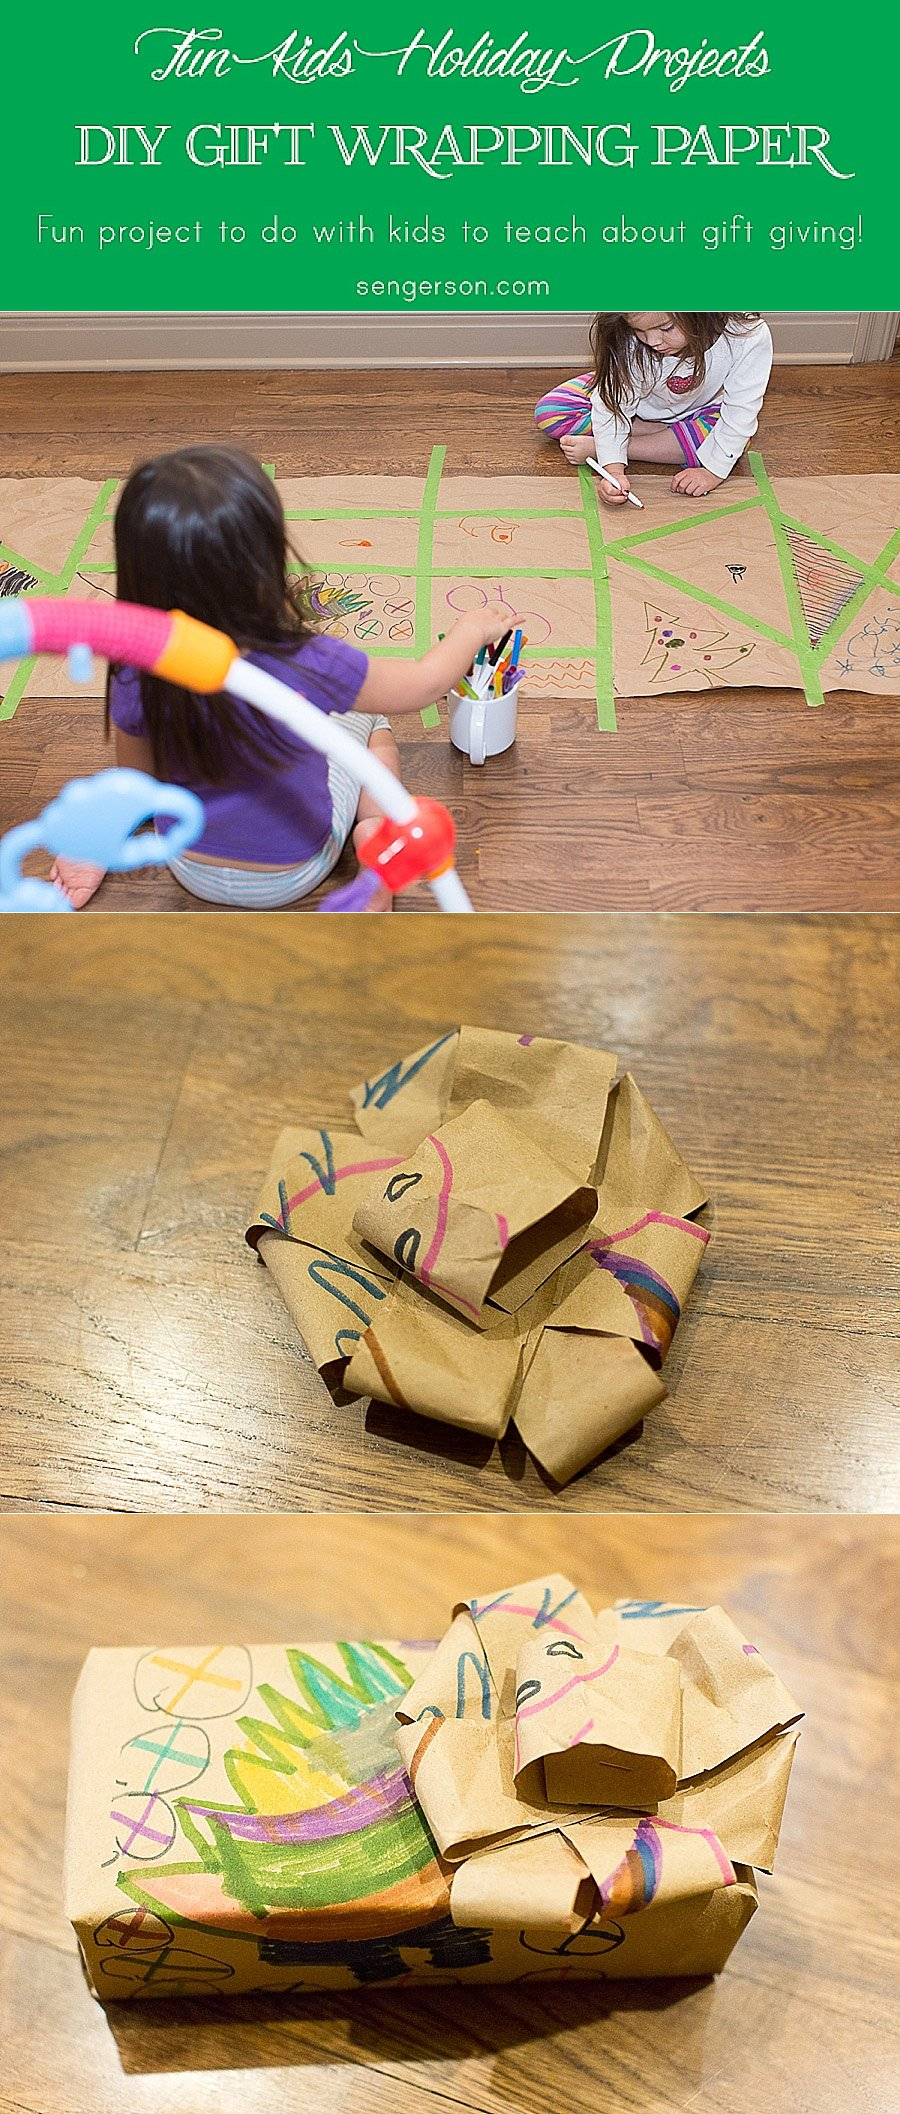 DIY-gift-wrapping-project_0026x